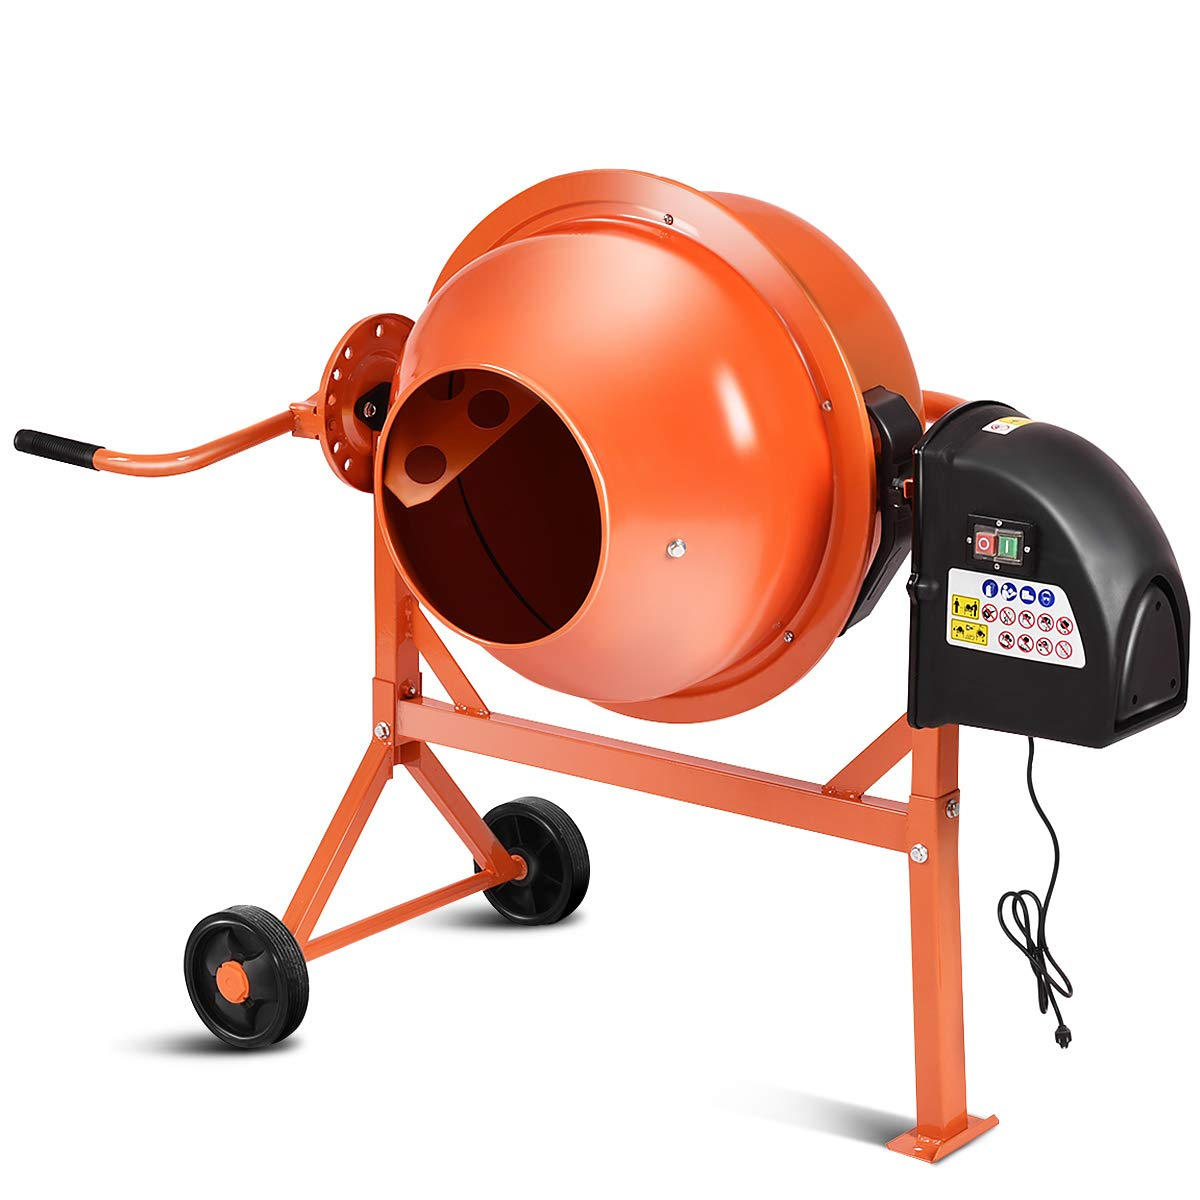 Goplus Electric Cement Concrete Mixer 1/2HP 2.2 Cubic Ft Barrow Machine for Mixing Mortar, Stucco and Seeds by Goplus